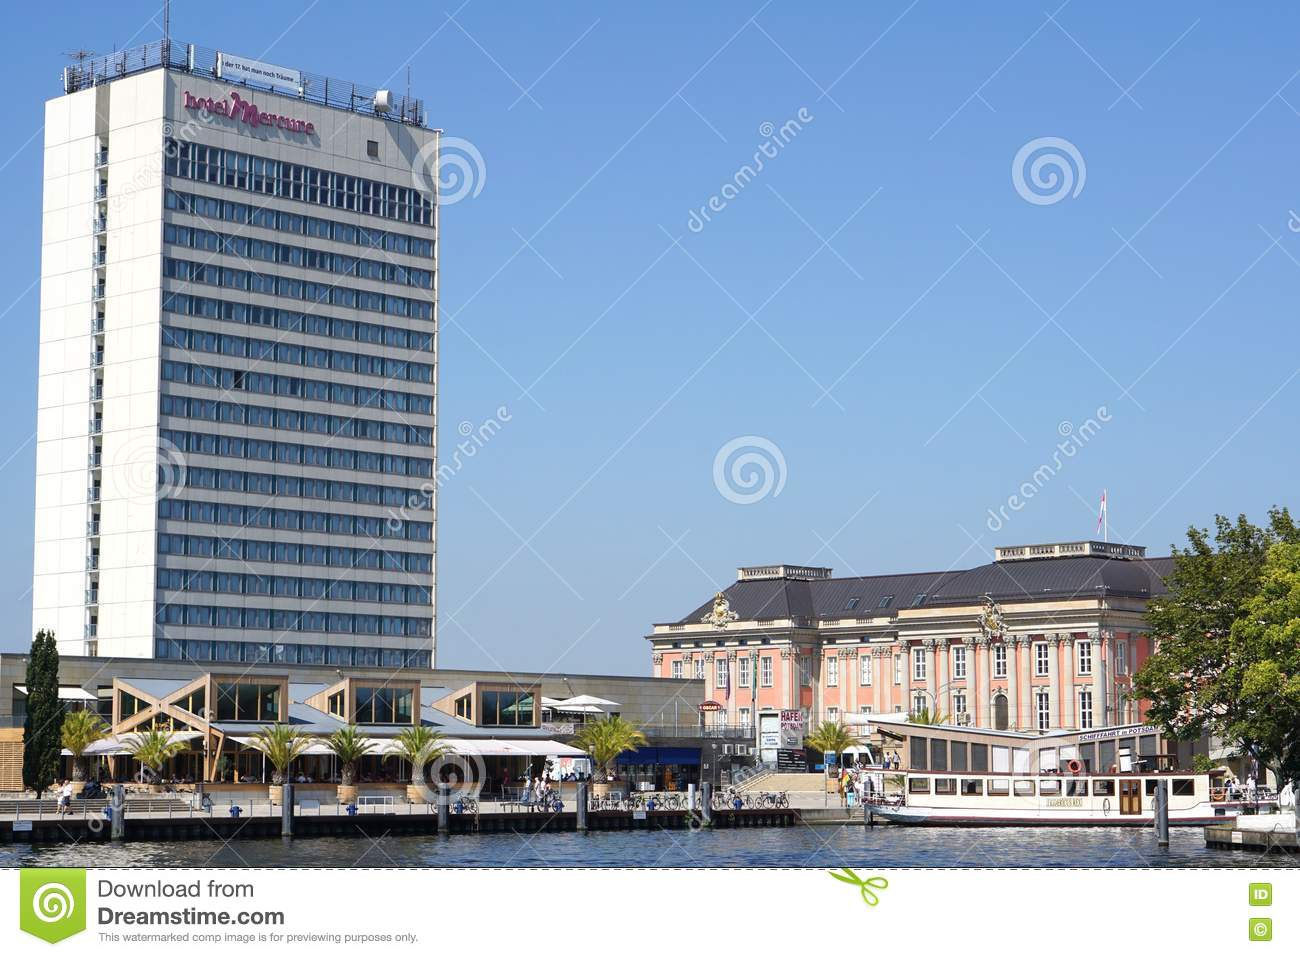 Hotel Mercure River Havel Potsdam Germany Editorial Image